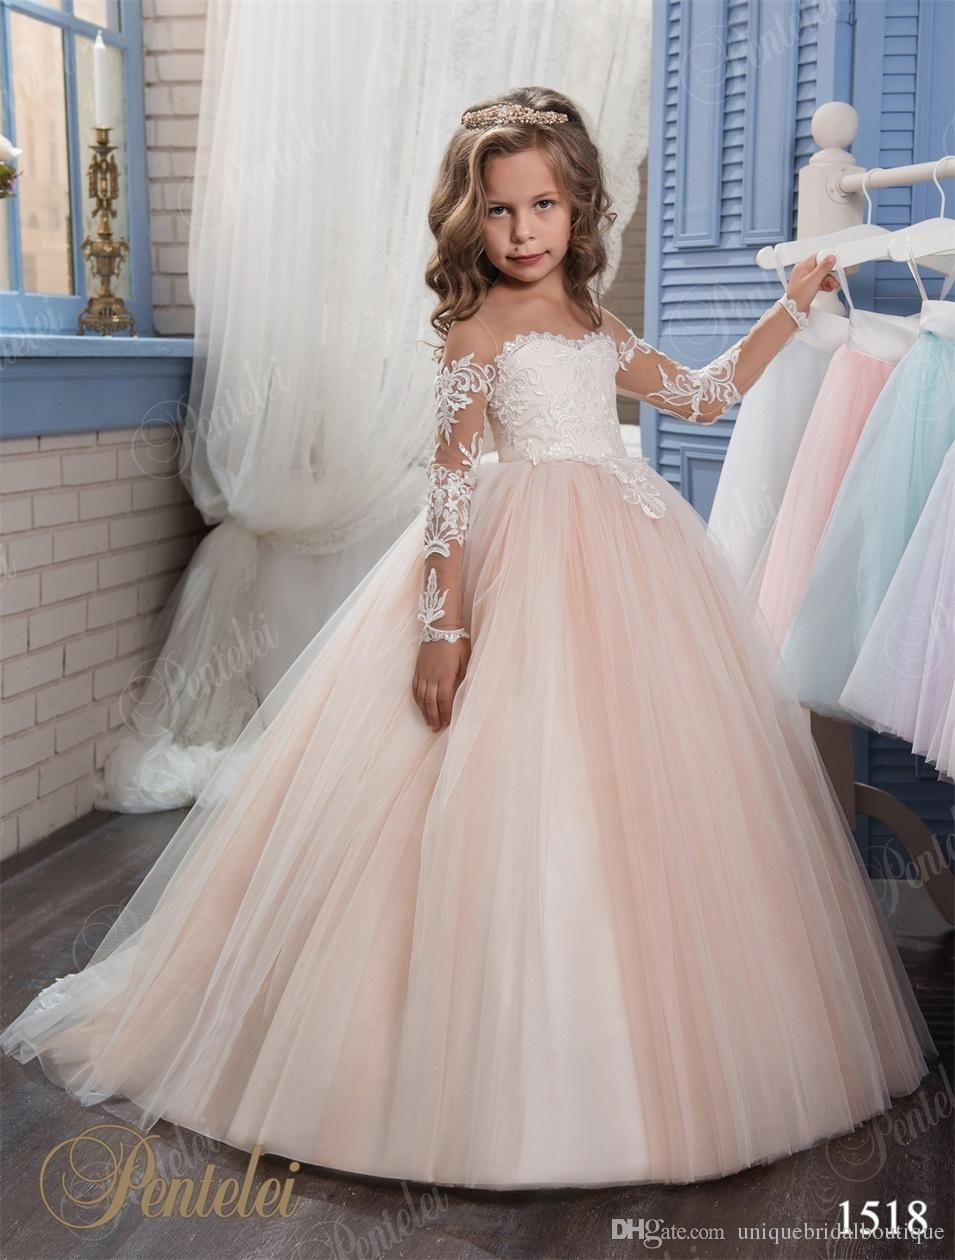 Kids Wedding Dresses 2017 Pentelei With Illusion Long